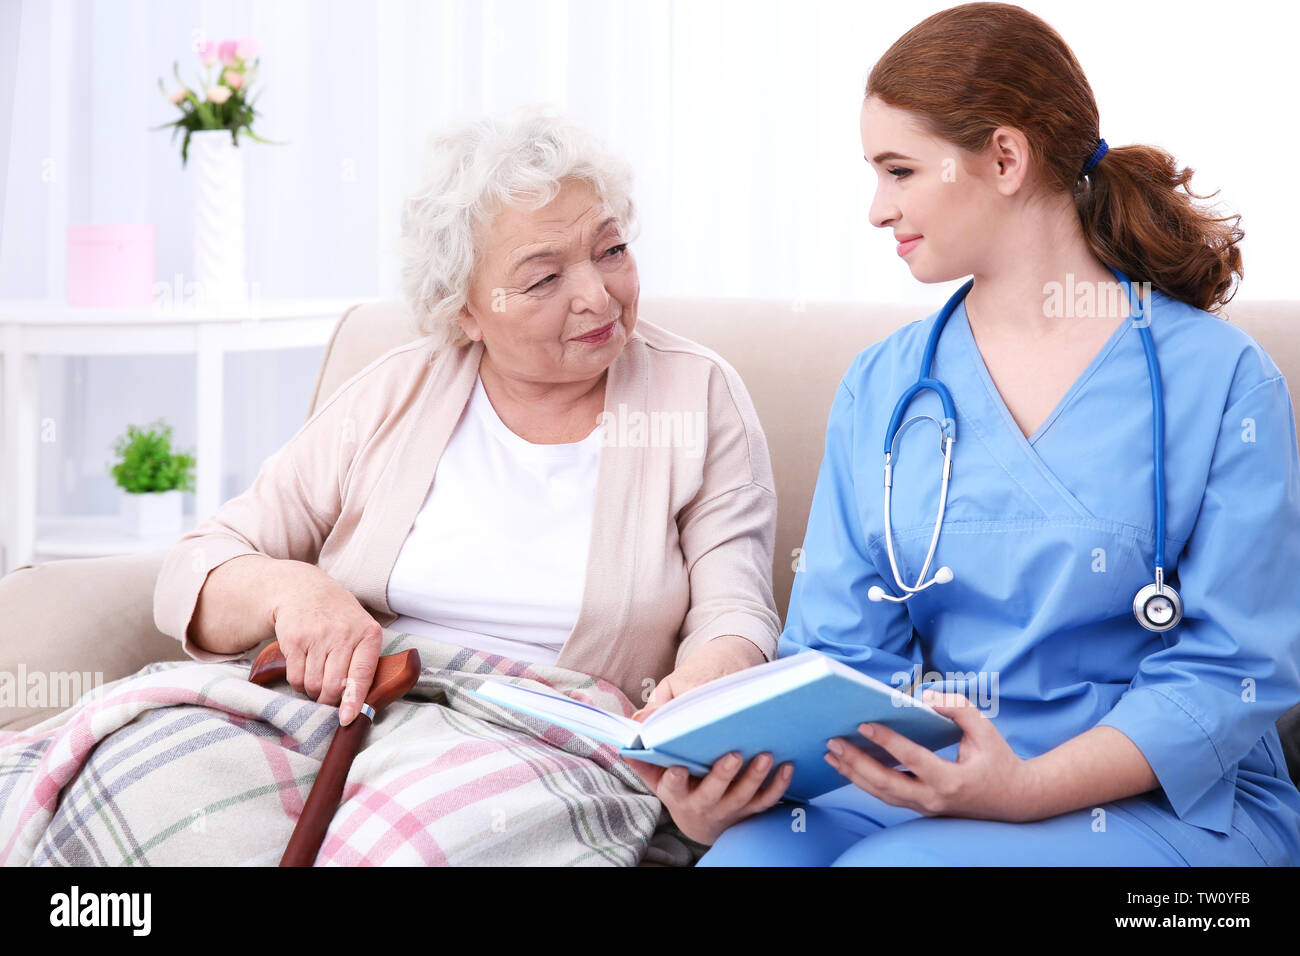 Nurse reading book to elderly woman on couch - Stock Image